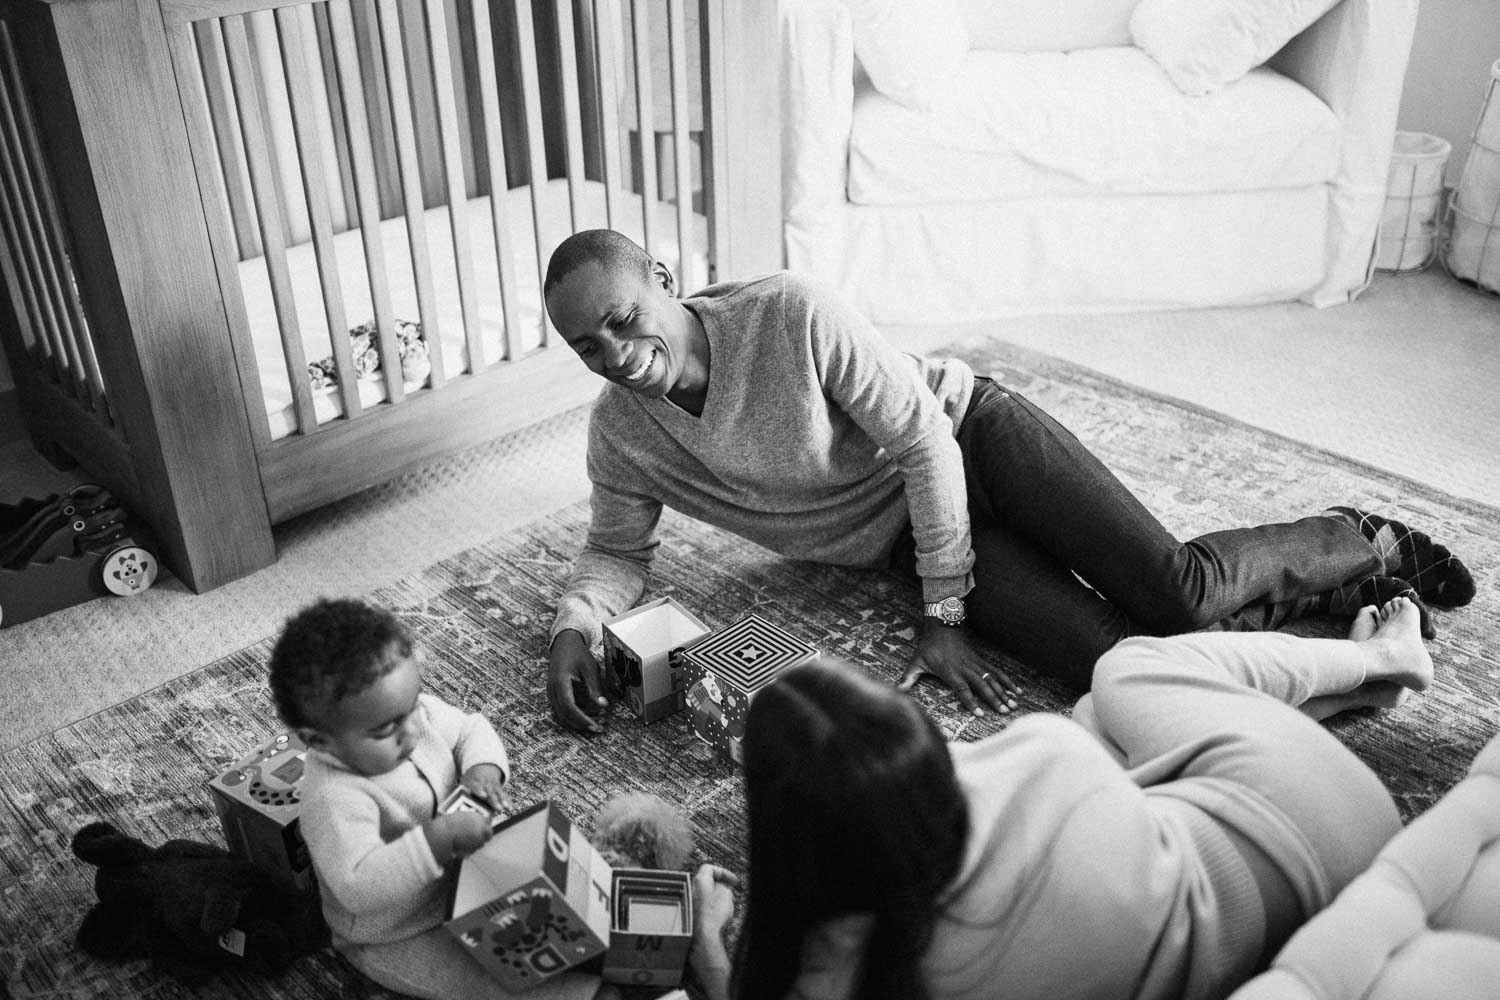 candid-black-and-white-precious-moment-of-parents-and-child-playing-with-toys-in-nursery-la-california